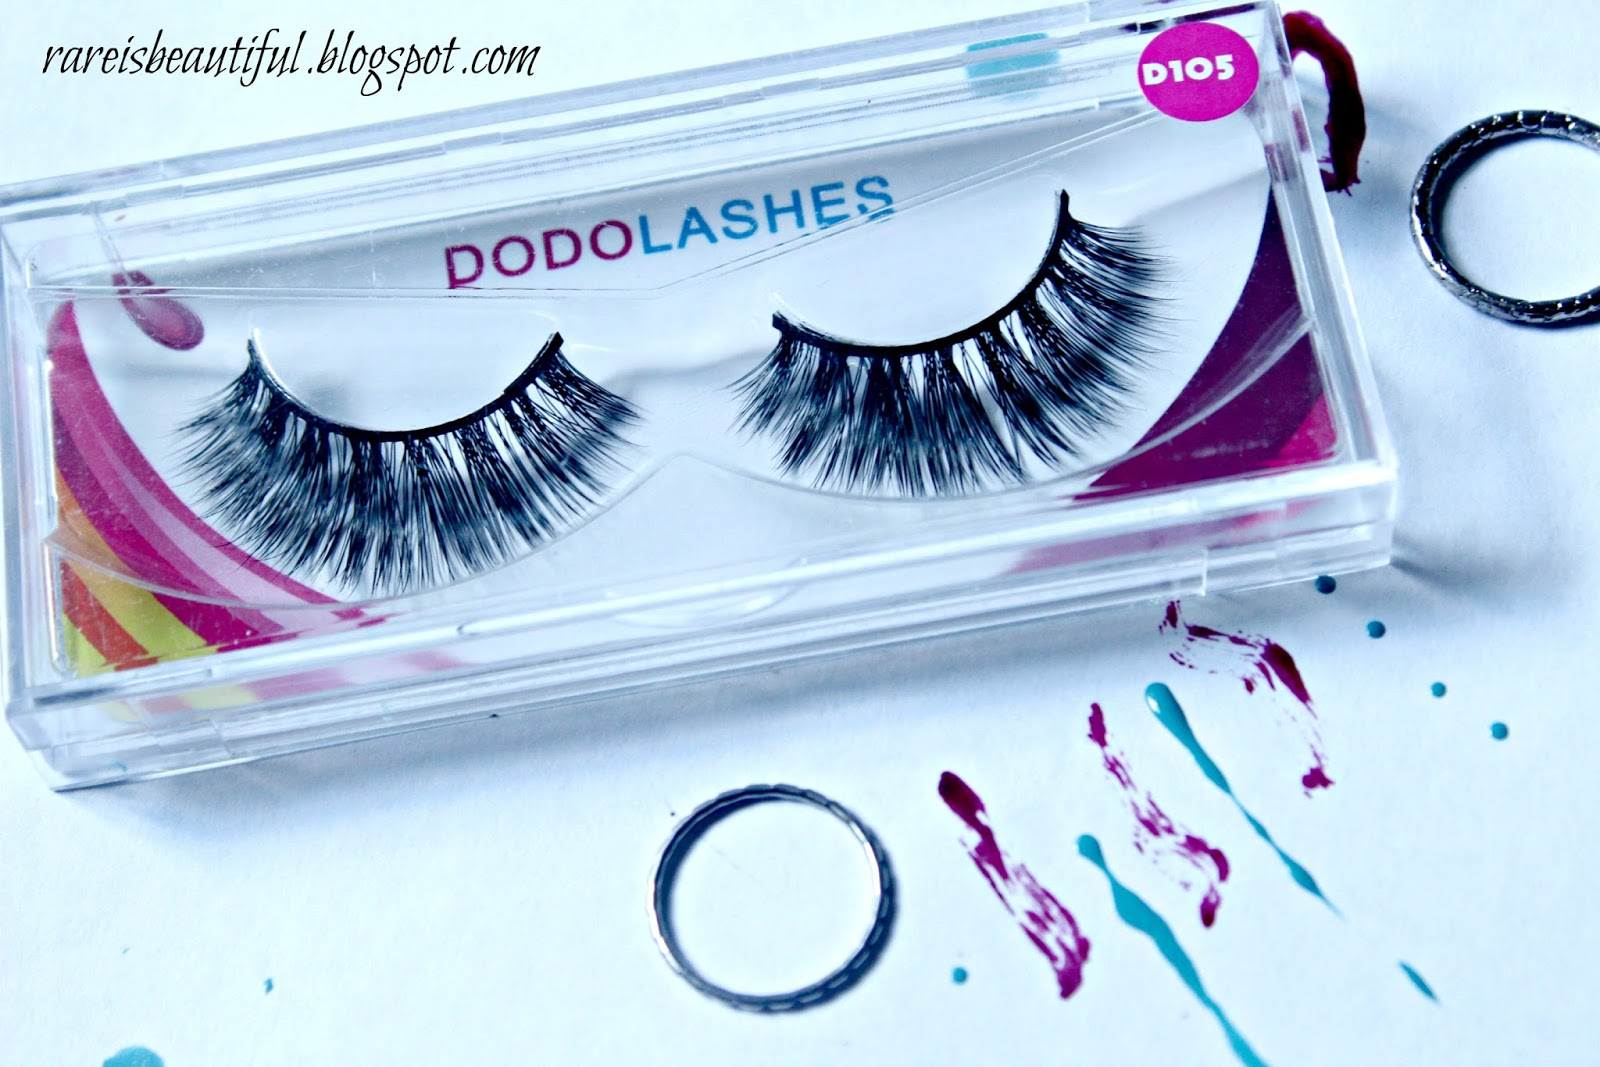 acc5ea88da5 What's a complete makeup look without an AWESOME mascara or better still, a  fabulous pair of lashes???? I'll wait. ( Lmao , I hope I didn't sound  aggressive ...